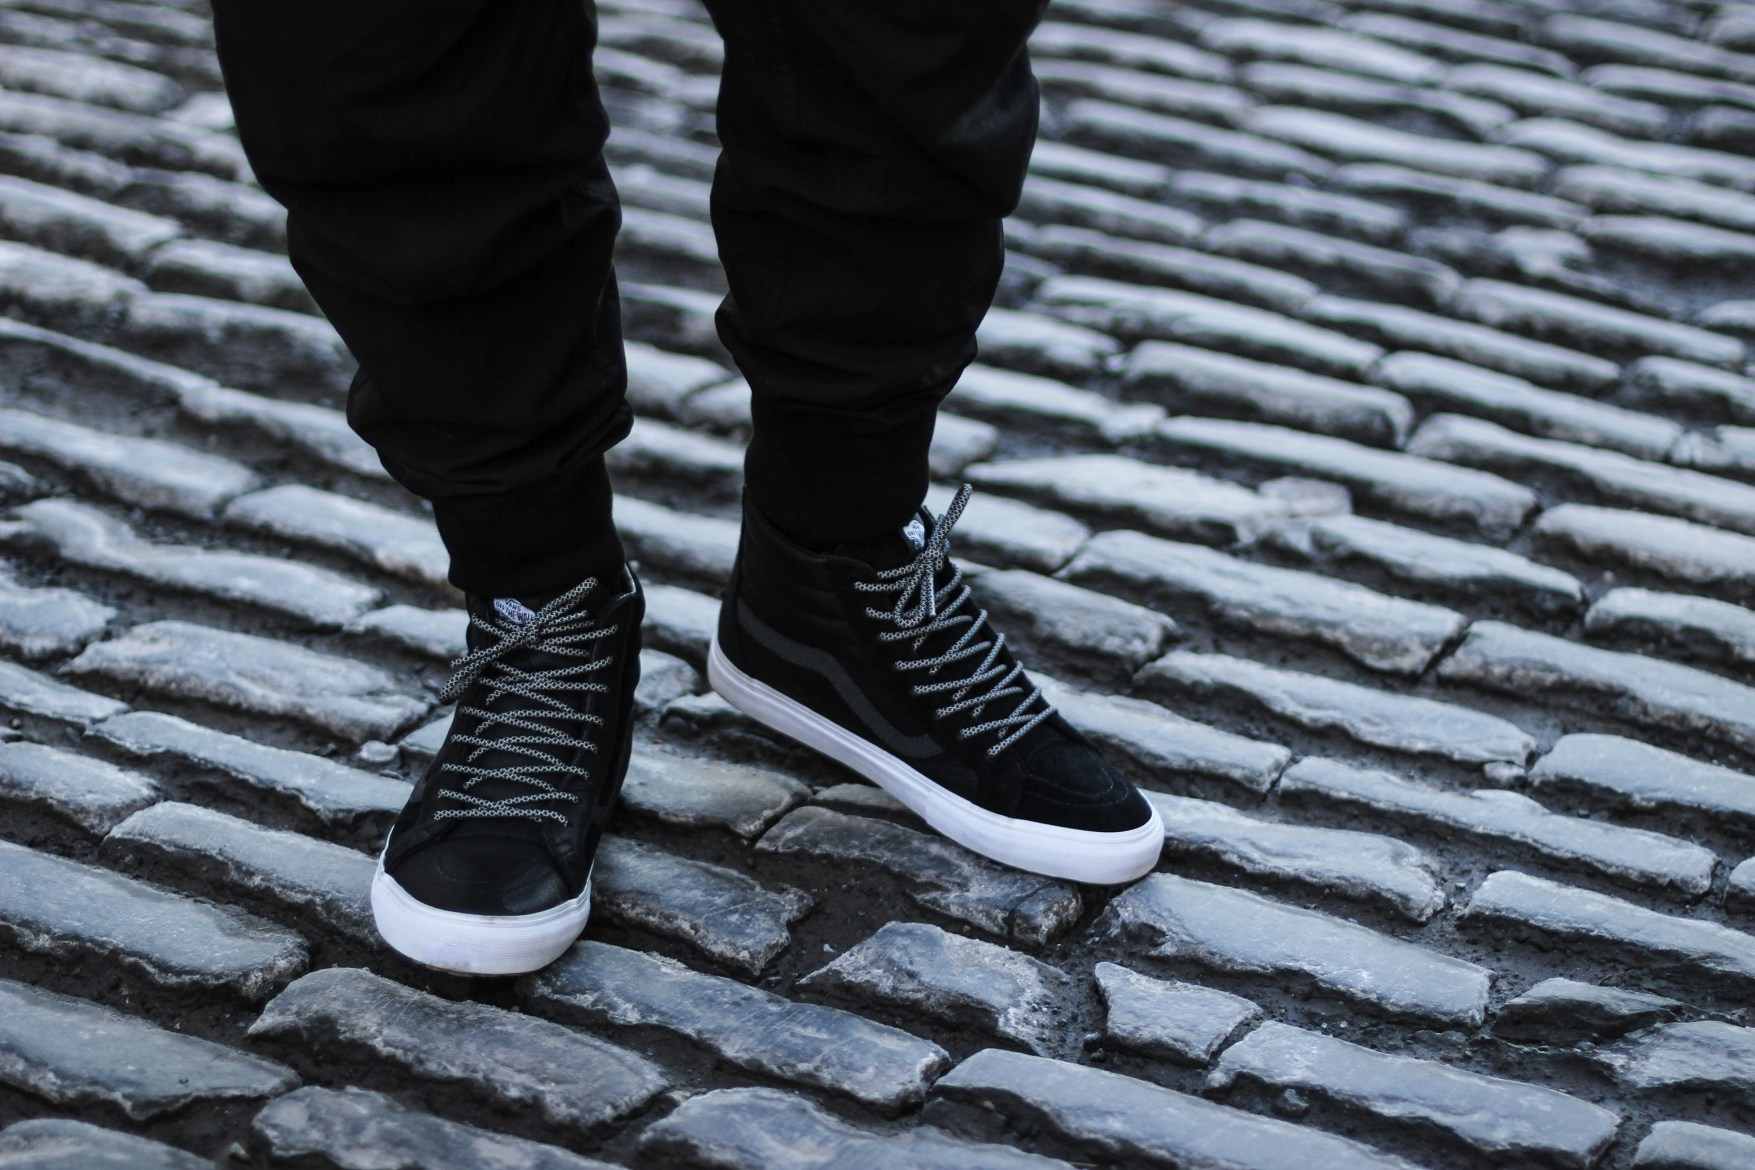 the-raised-by-wolves-x-oth-x-vans-pack-is-fit-for-bracing-the-elements-02.jpg